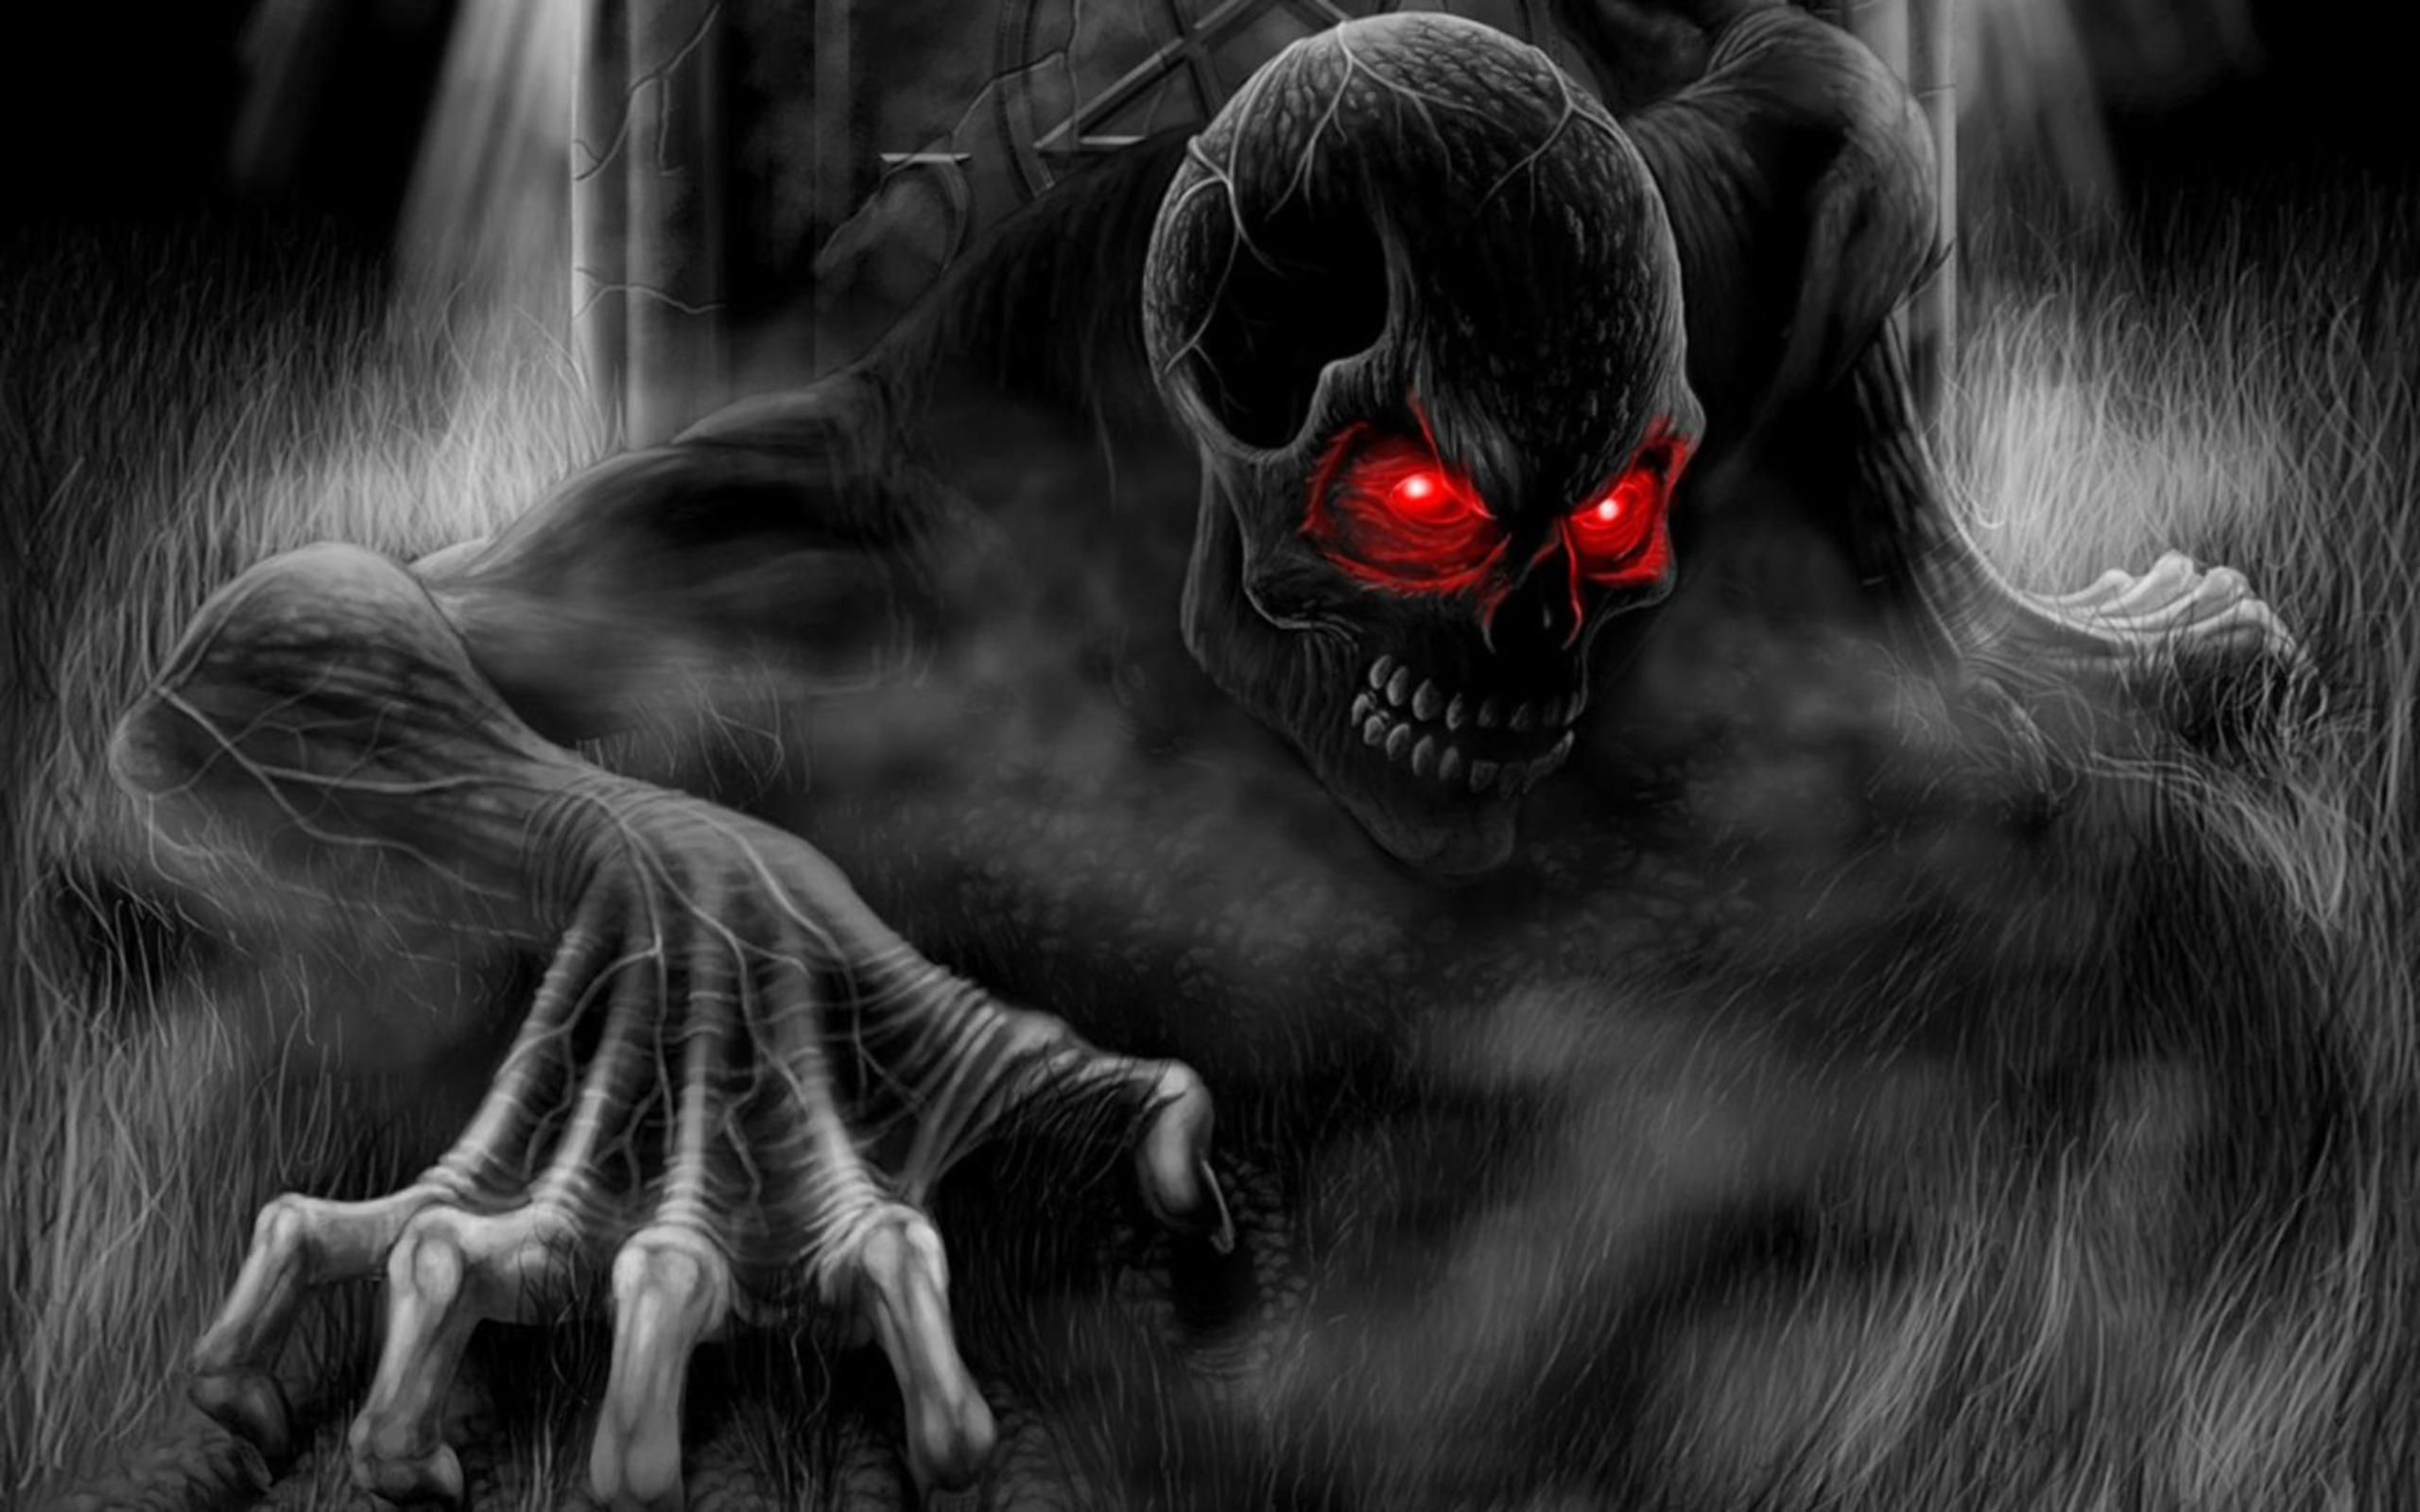 Angry skeleton with red eyes wallpaper hd httpimashonw wallpaper voltagebd Gallery